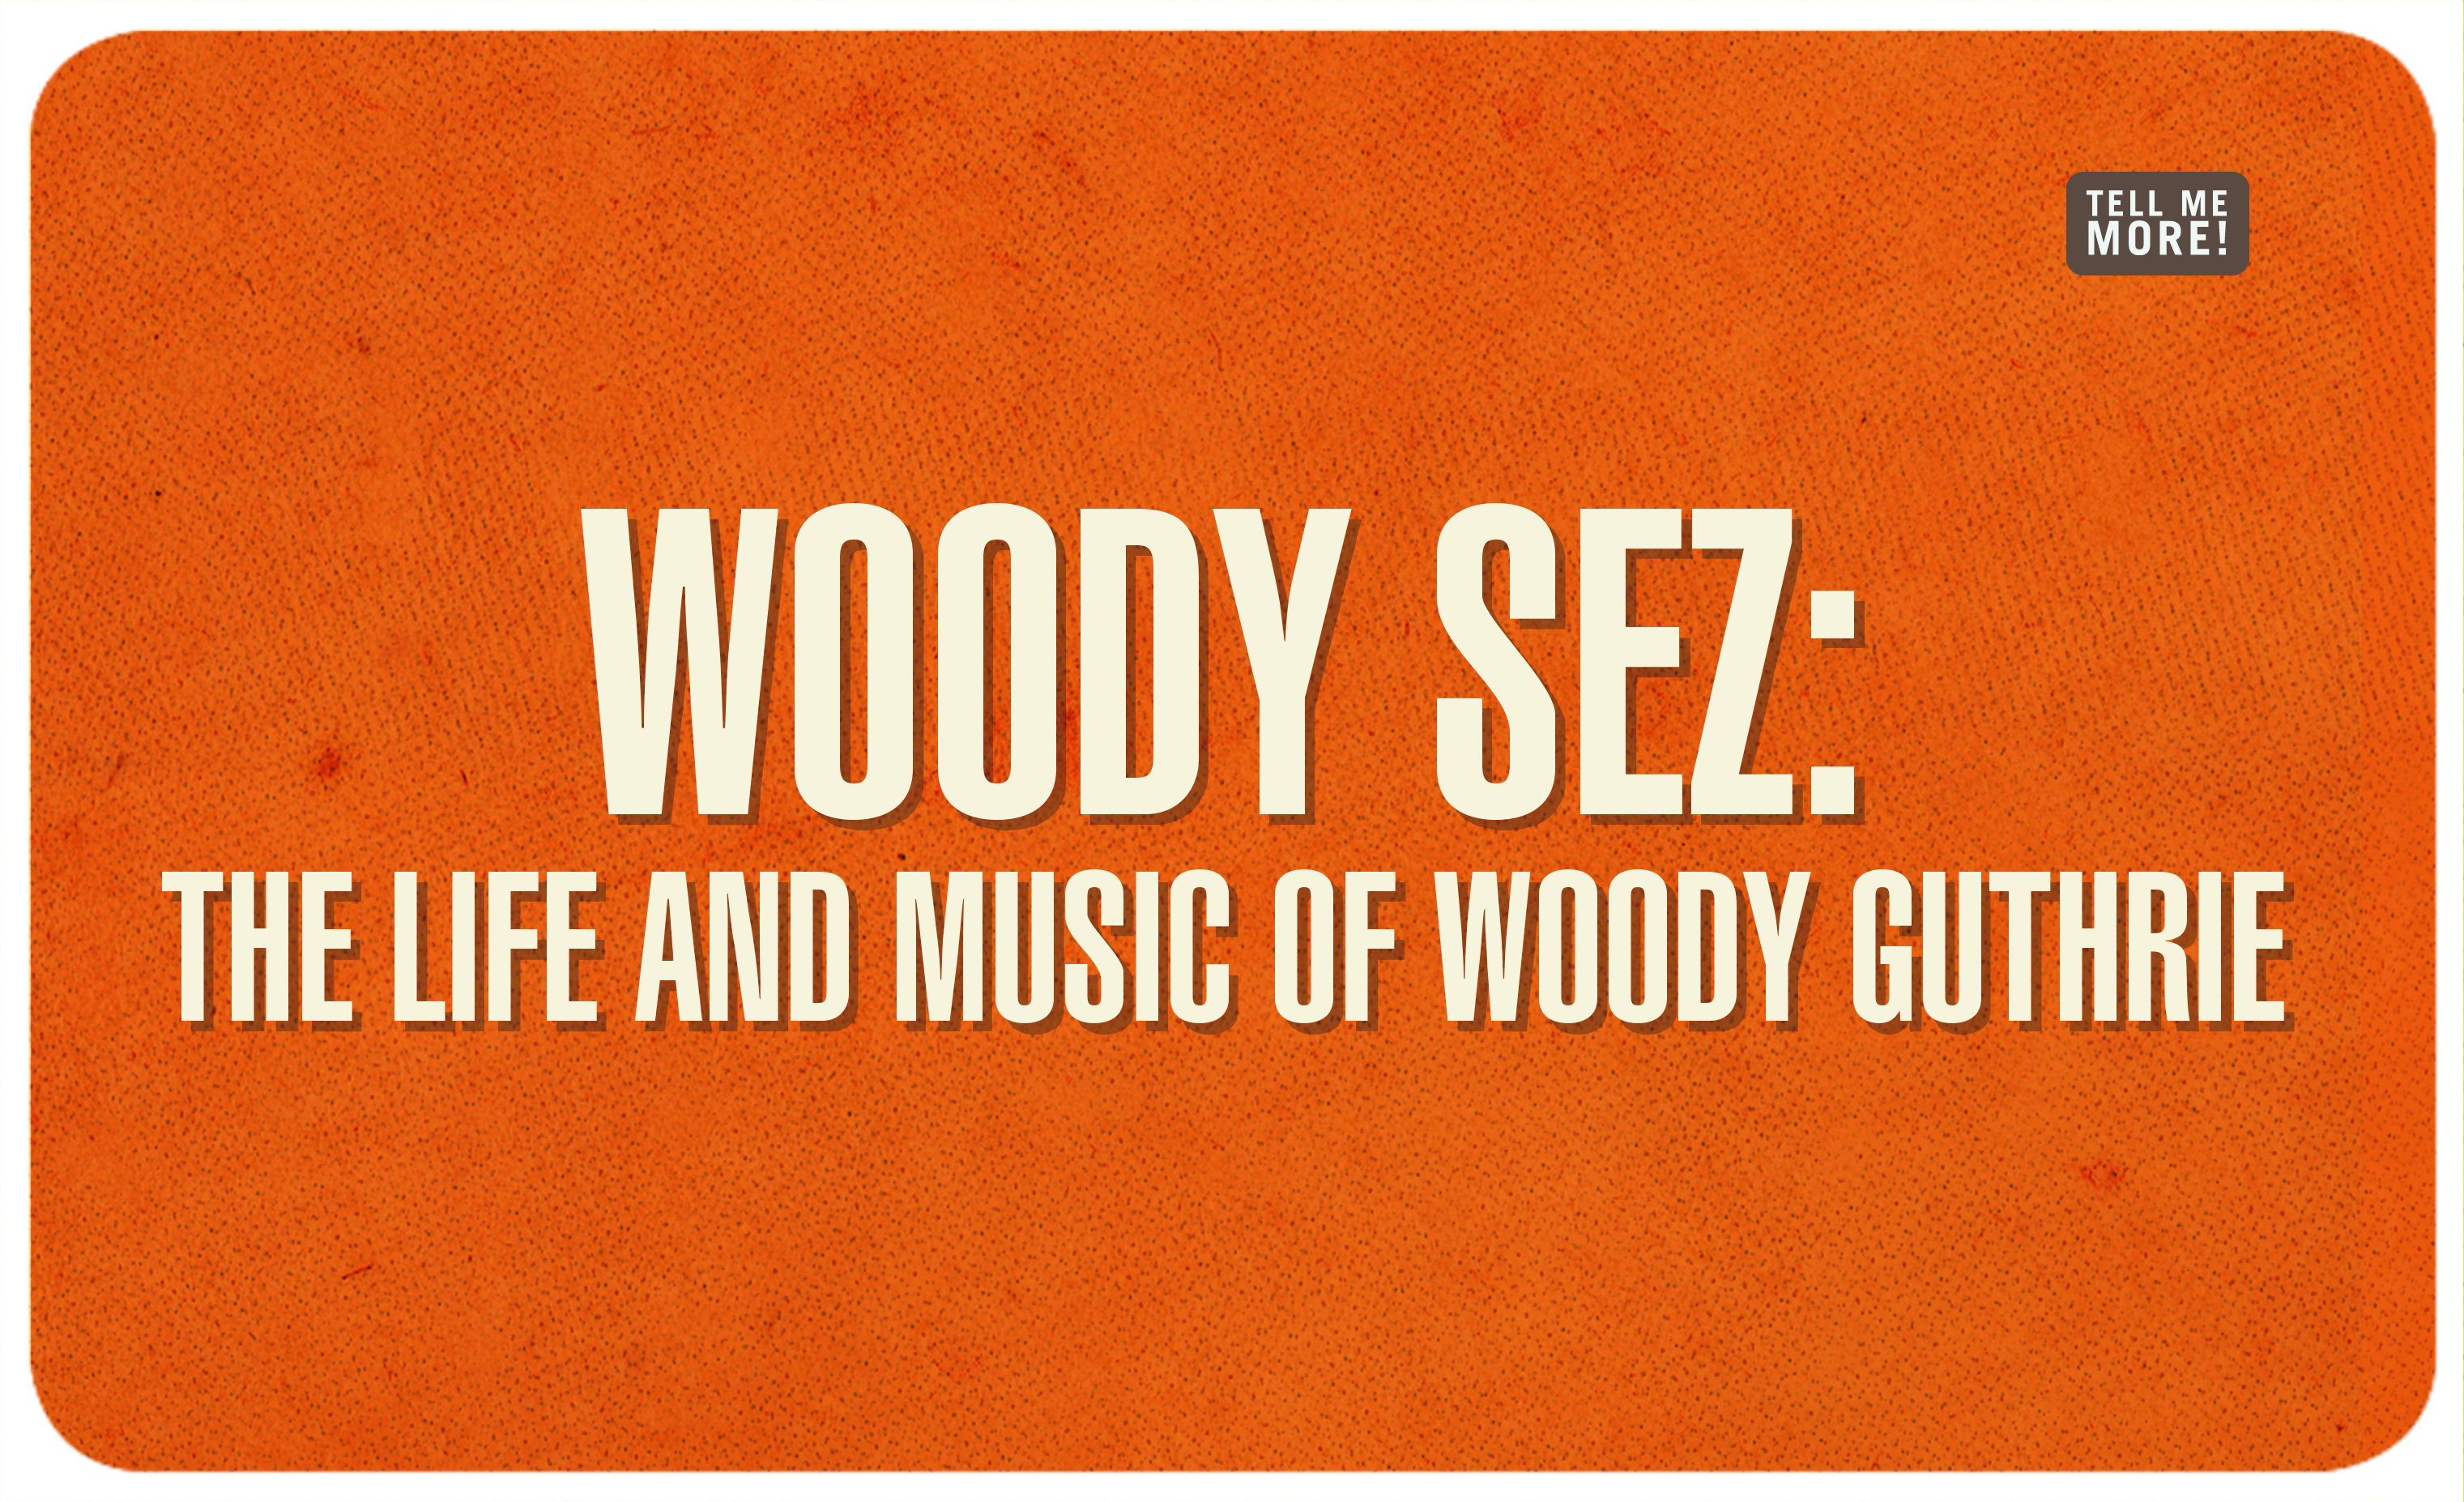 Woody Sez – The Life and Music of Woody Guthrie